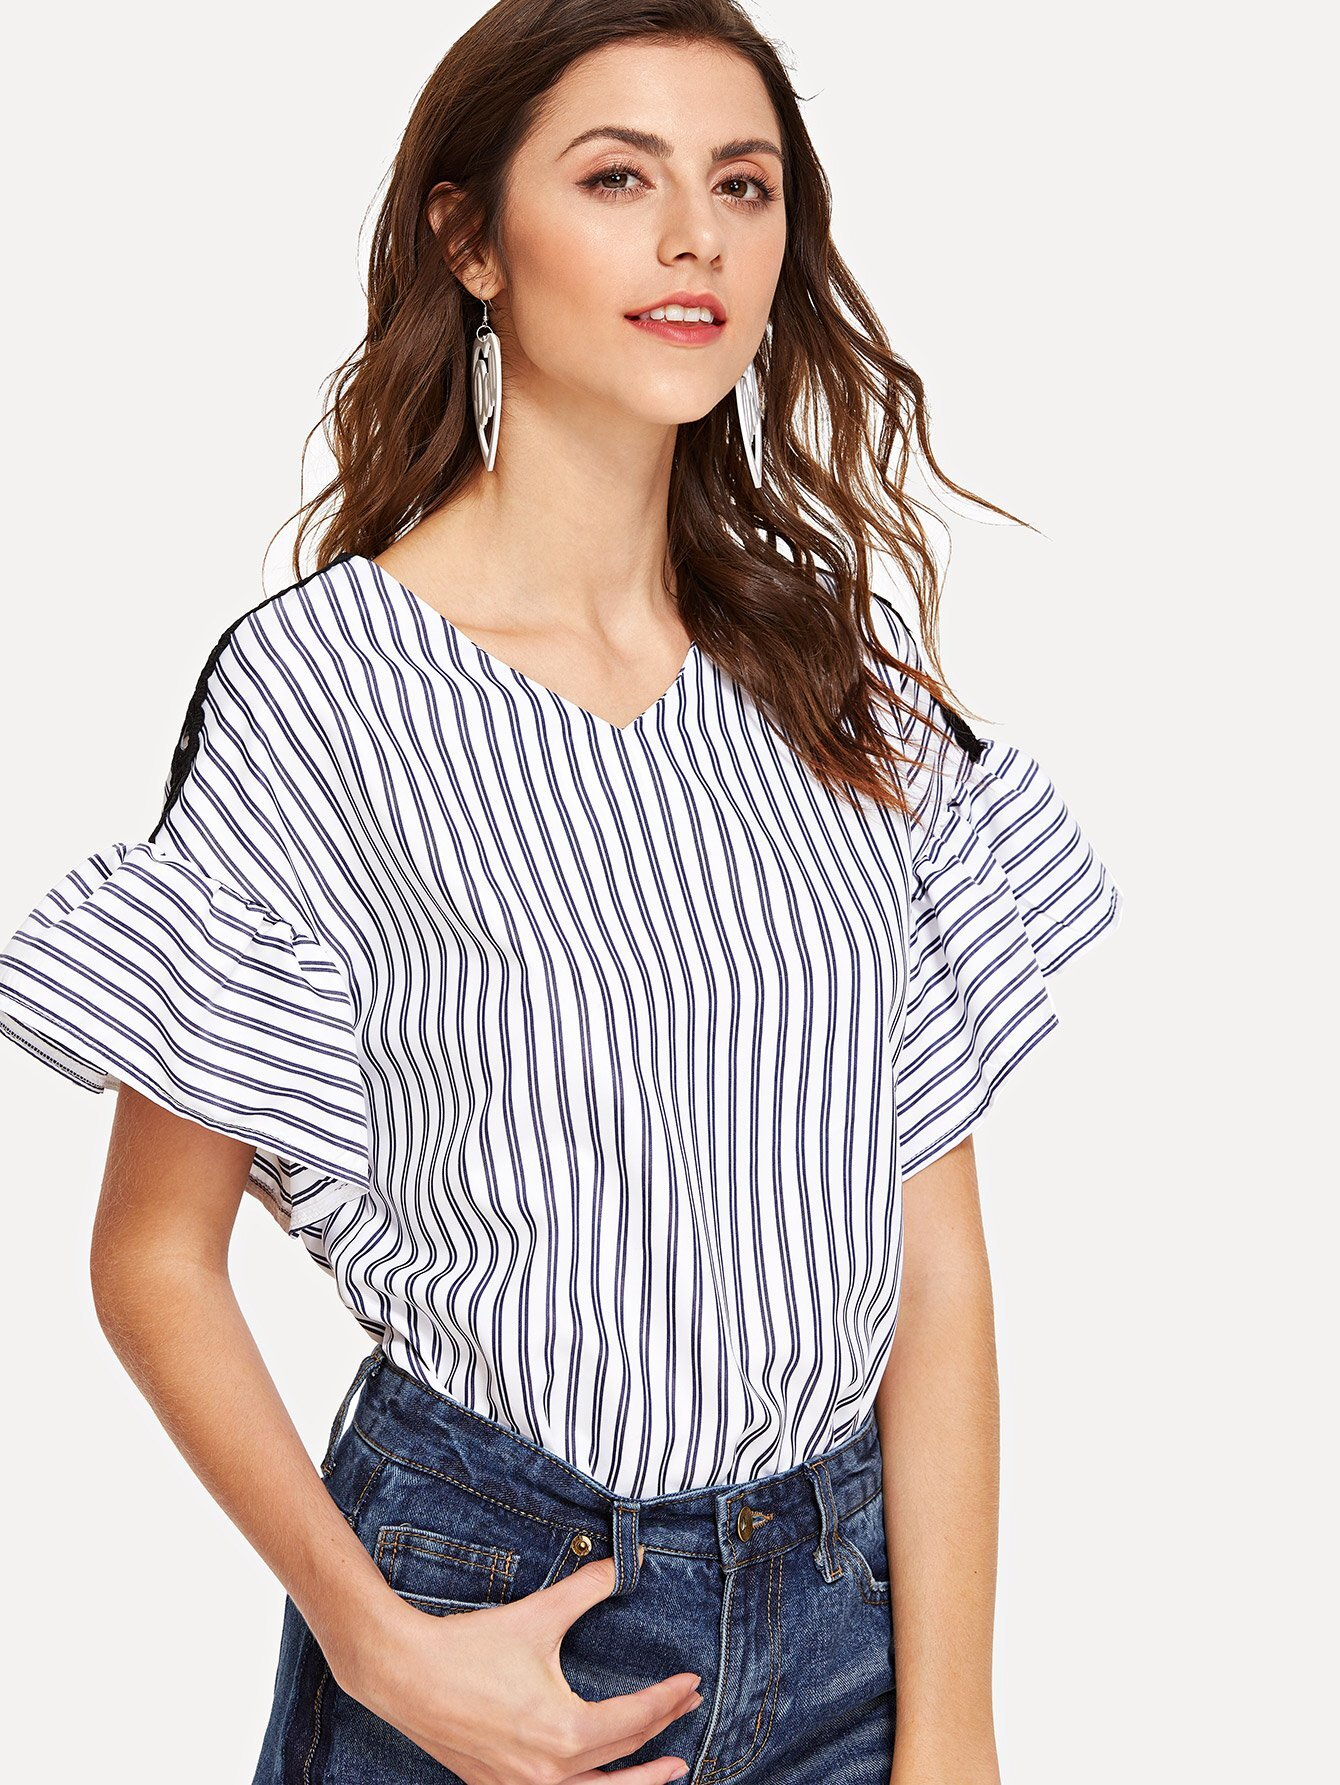 Lace Panel Flute Sleeve Striped Blouse contrast striped v neckline flute sleeve blouse